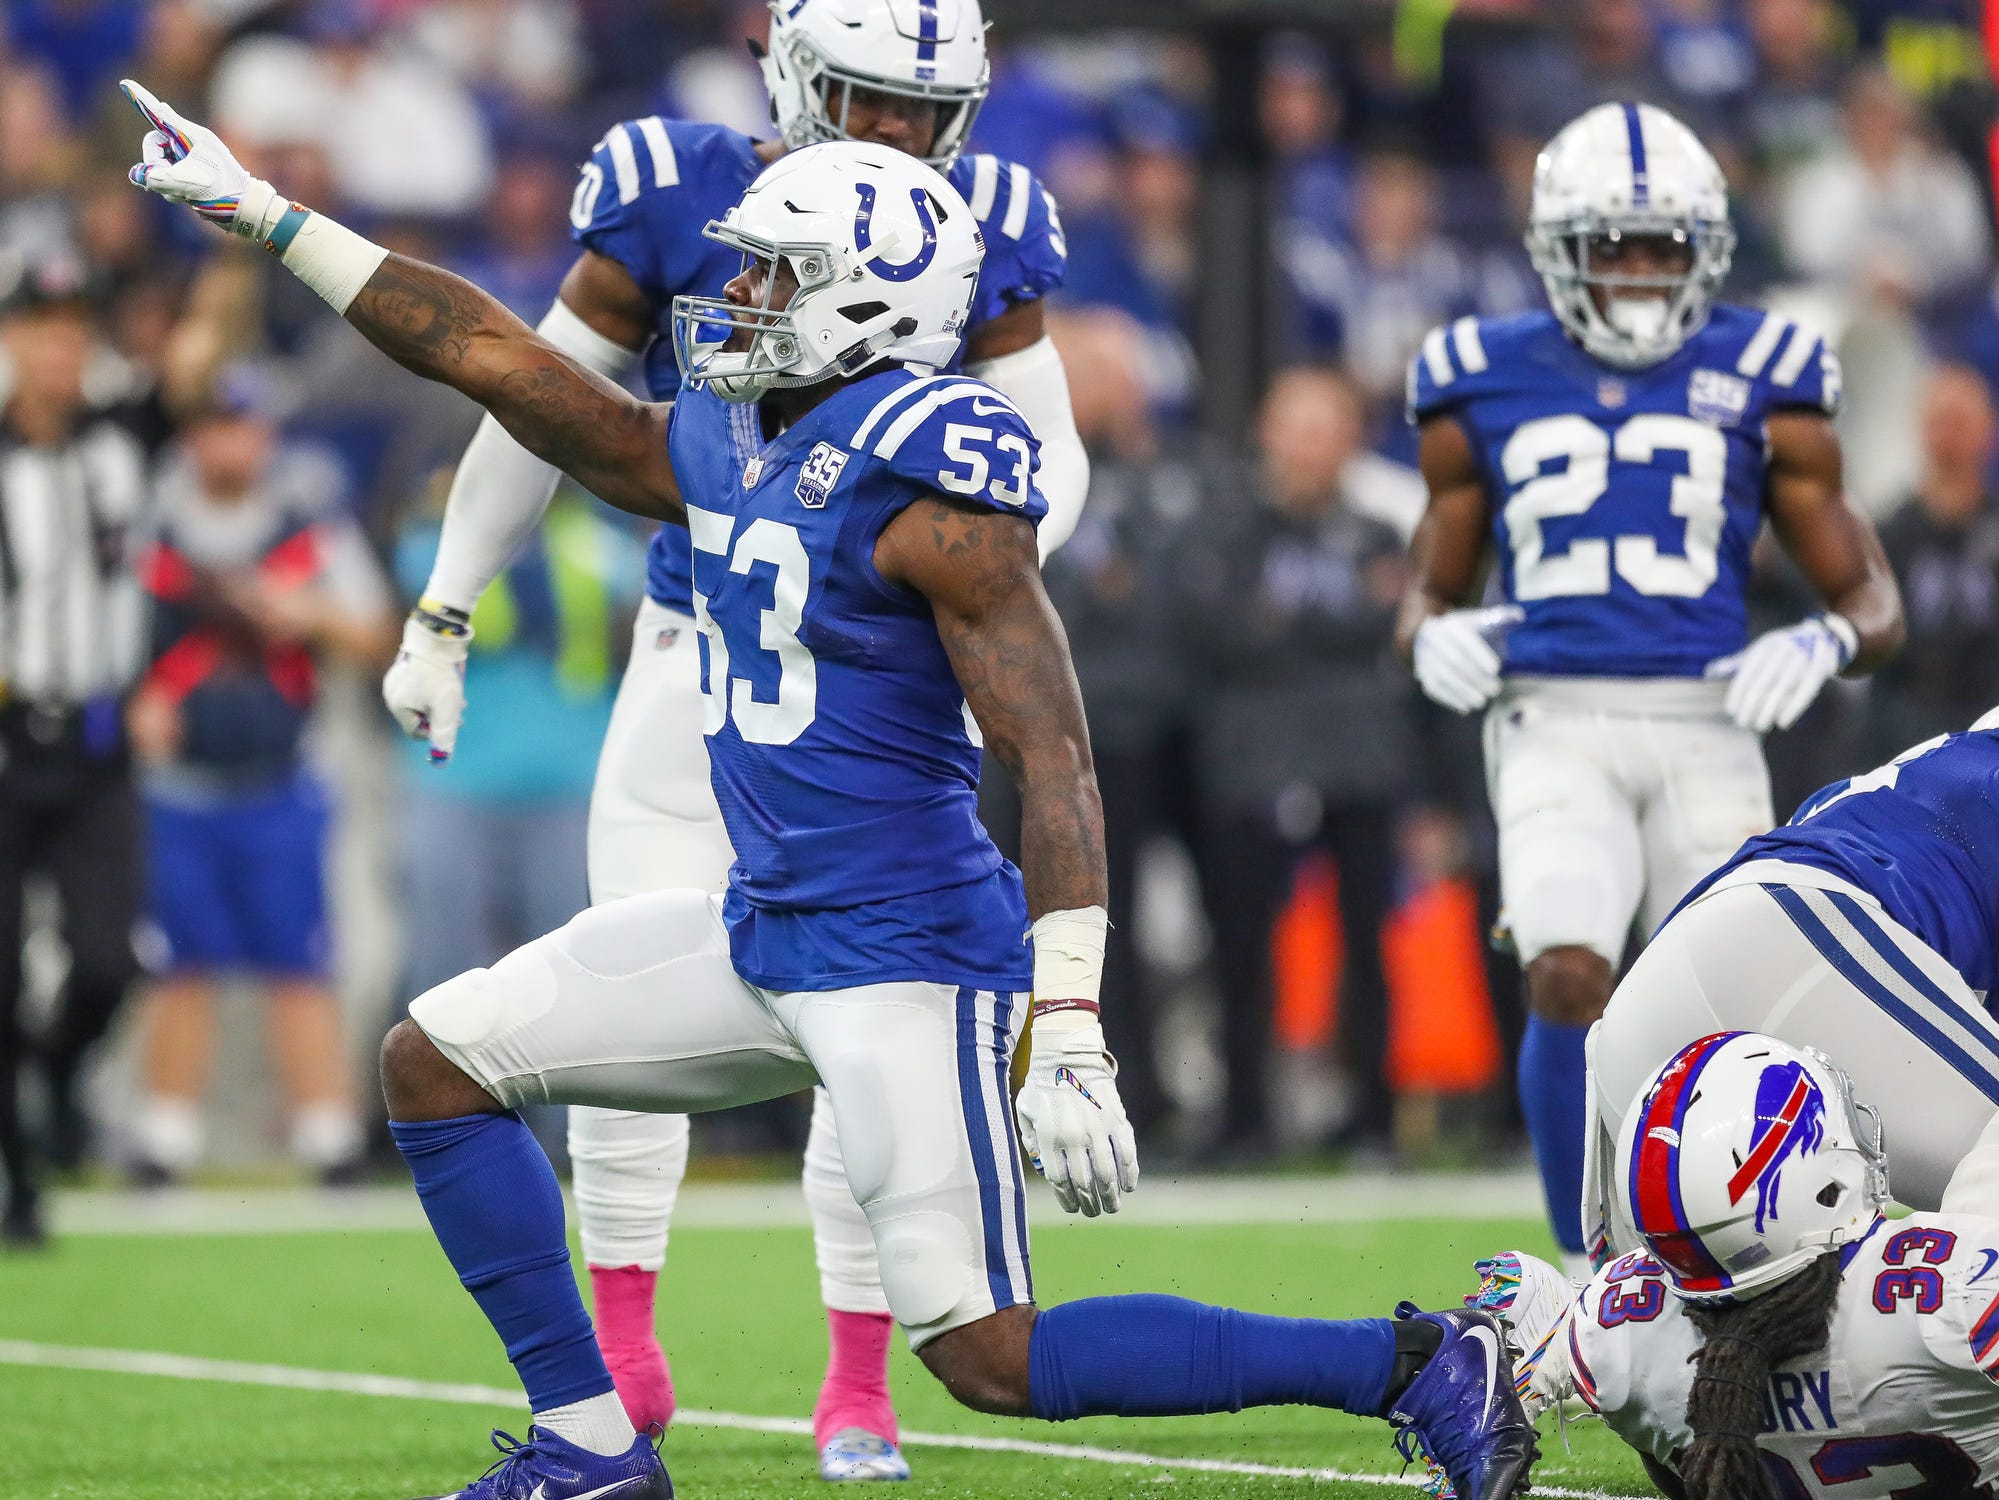 Indianapolis Colts linebacker Darius Leonard (53) celebrates a behind-the-line stop against the Buffalo Bills at Lucas Oil Stadium on Sunday, Oct. 21, 2018.